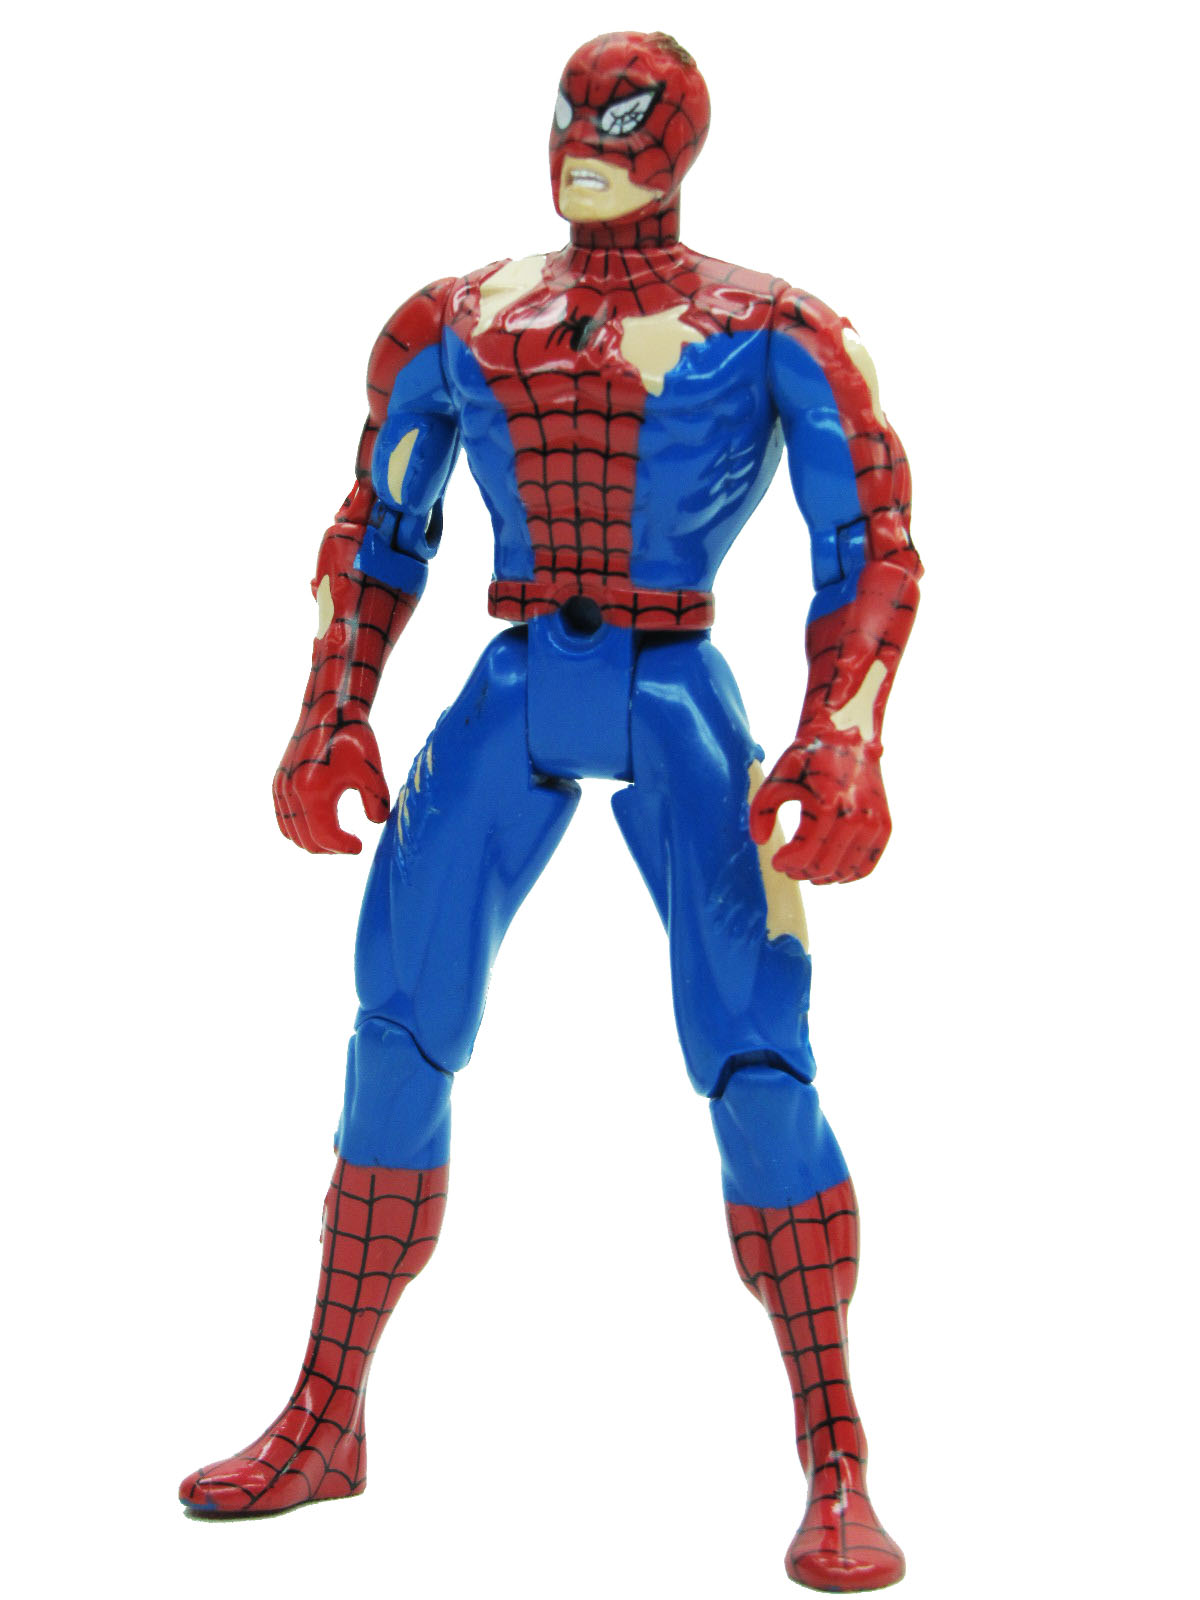 Spider-Man Animated Series Spider-Man Battle Ravaged Complete